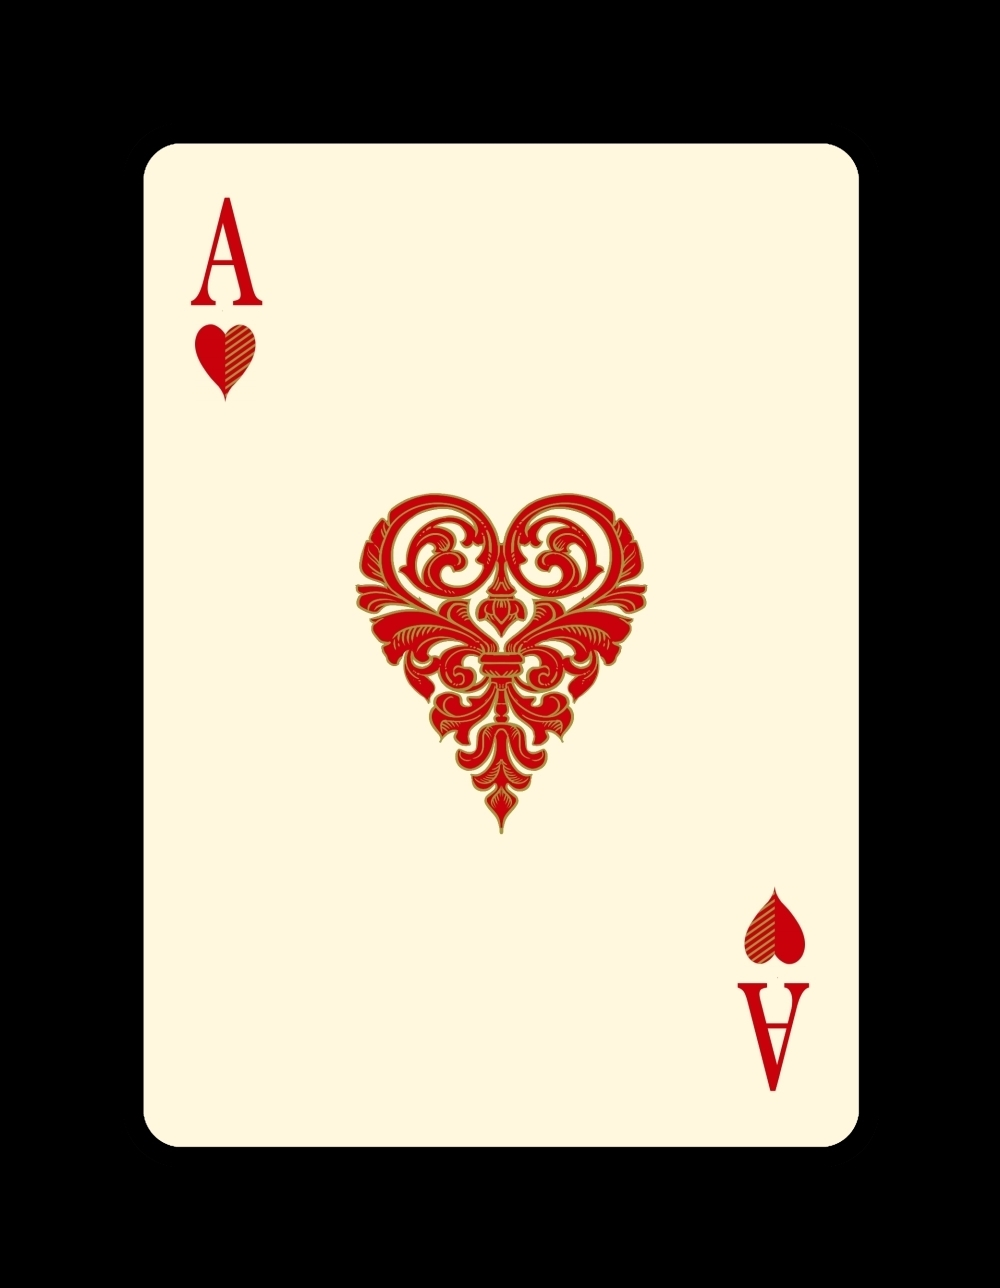 Ace Of Pentacles Images On Pinterest: Venexiana_Ace Of Hearts Med